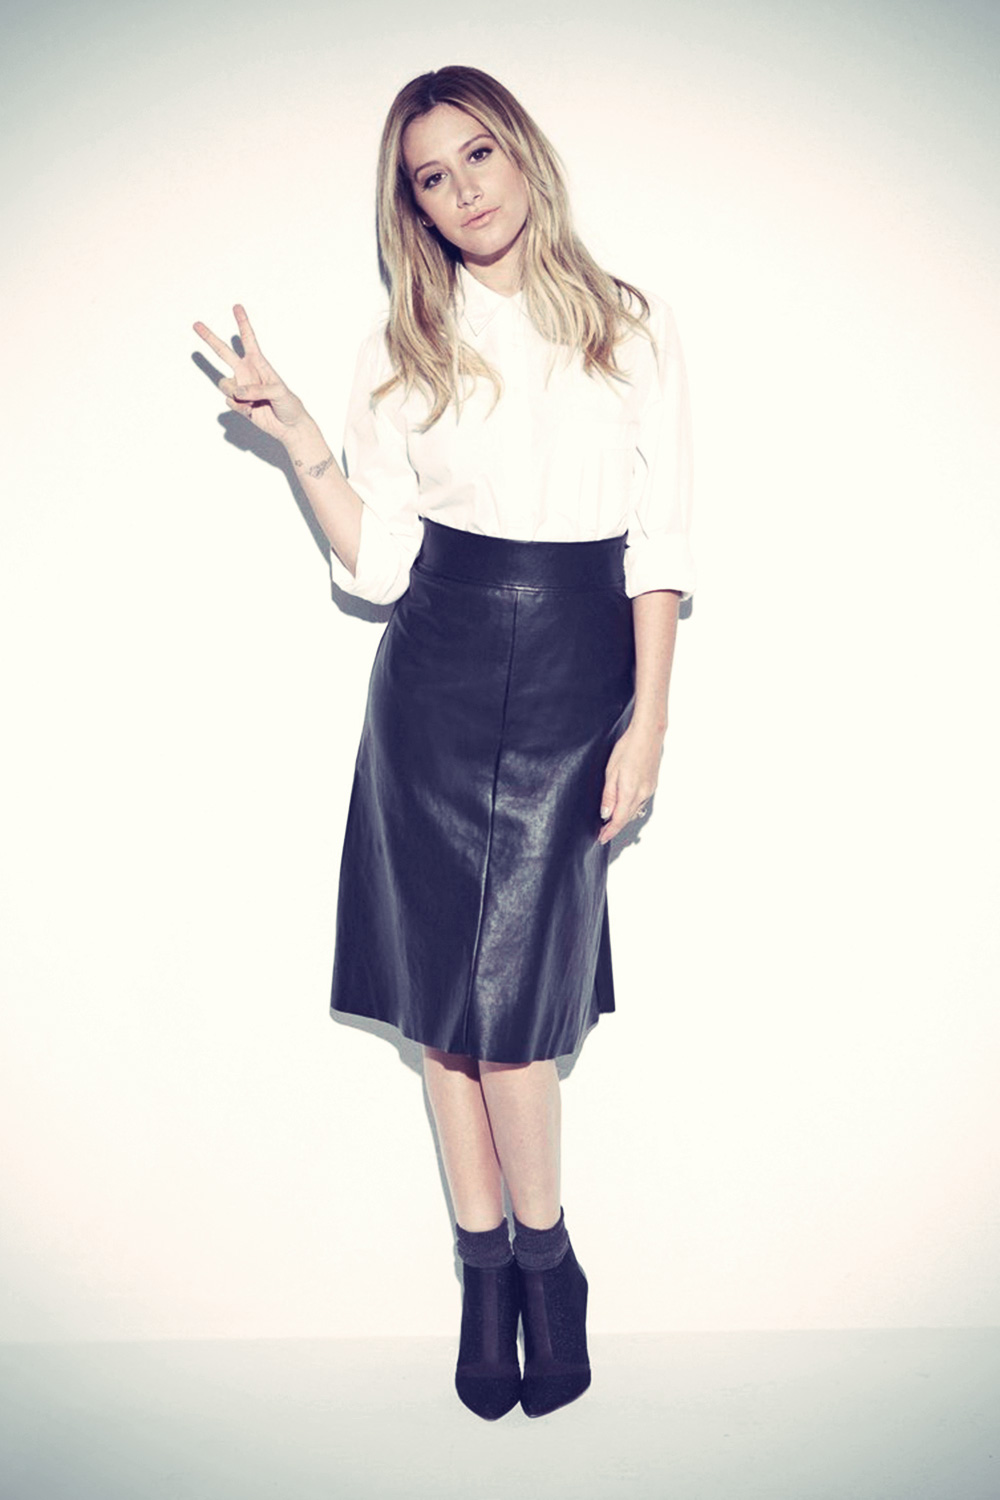 Ashley Tisdale Magdalena Wosinska photoshoot - Leather ... Rosie Huntington Whiteley Clothing